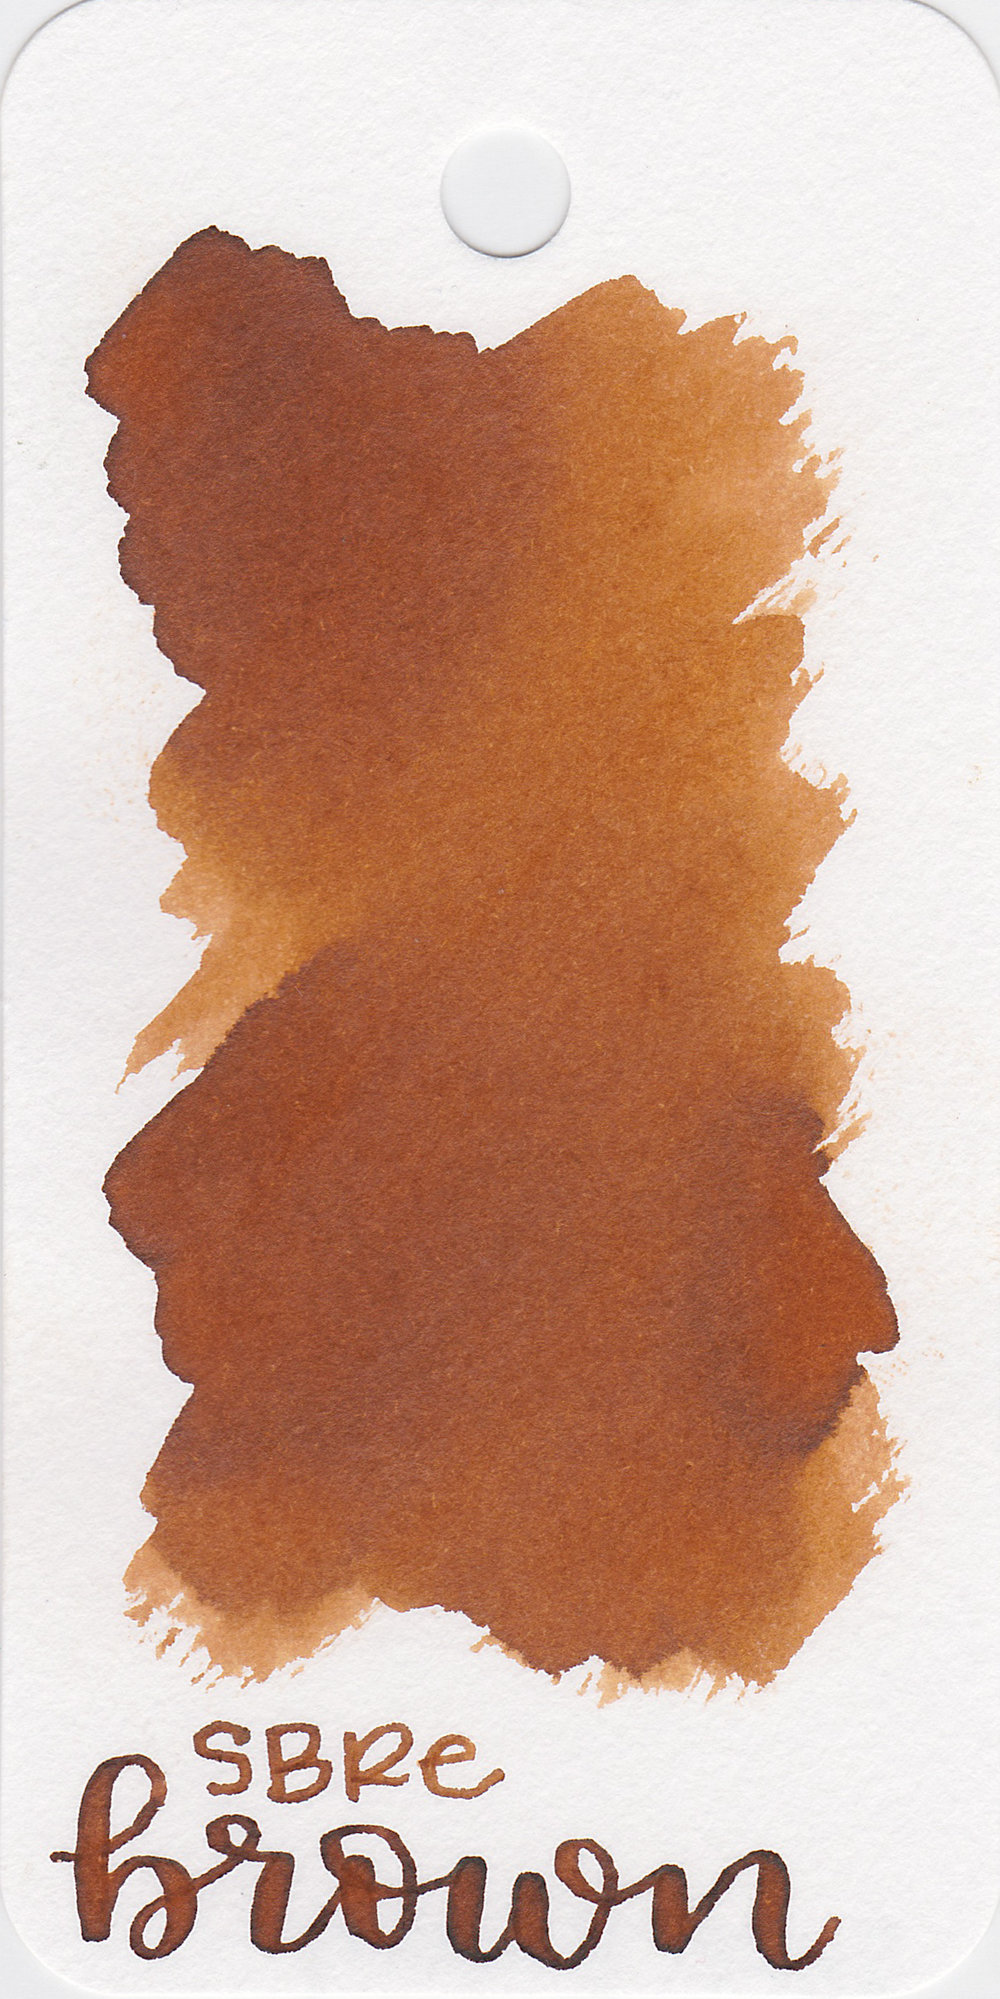 The color: - SBRE Brown is a medium brown with some shading.